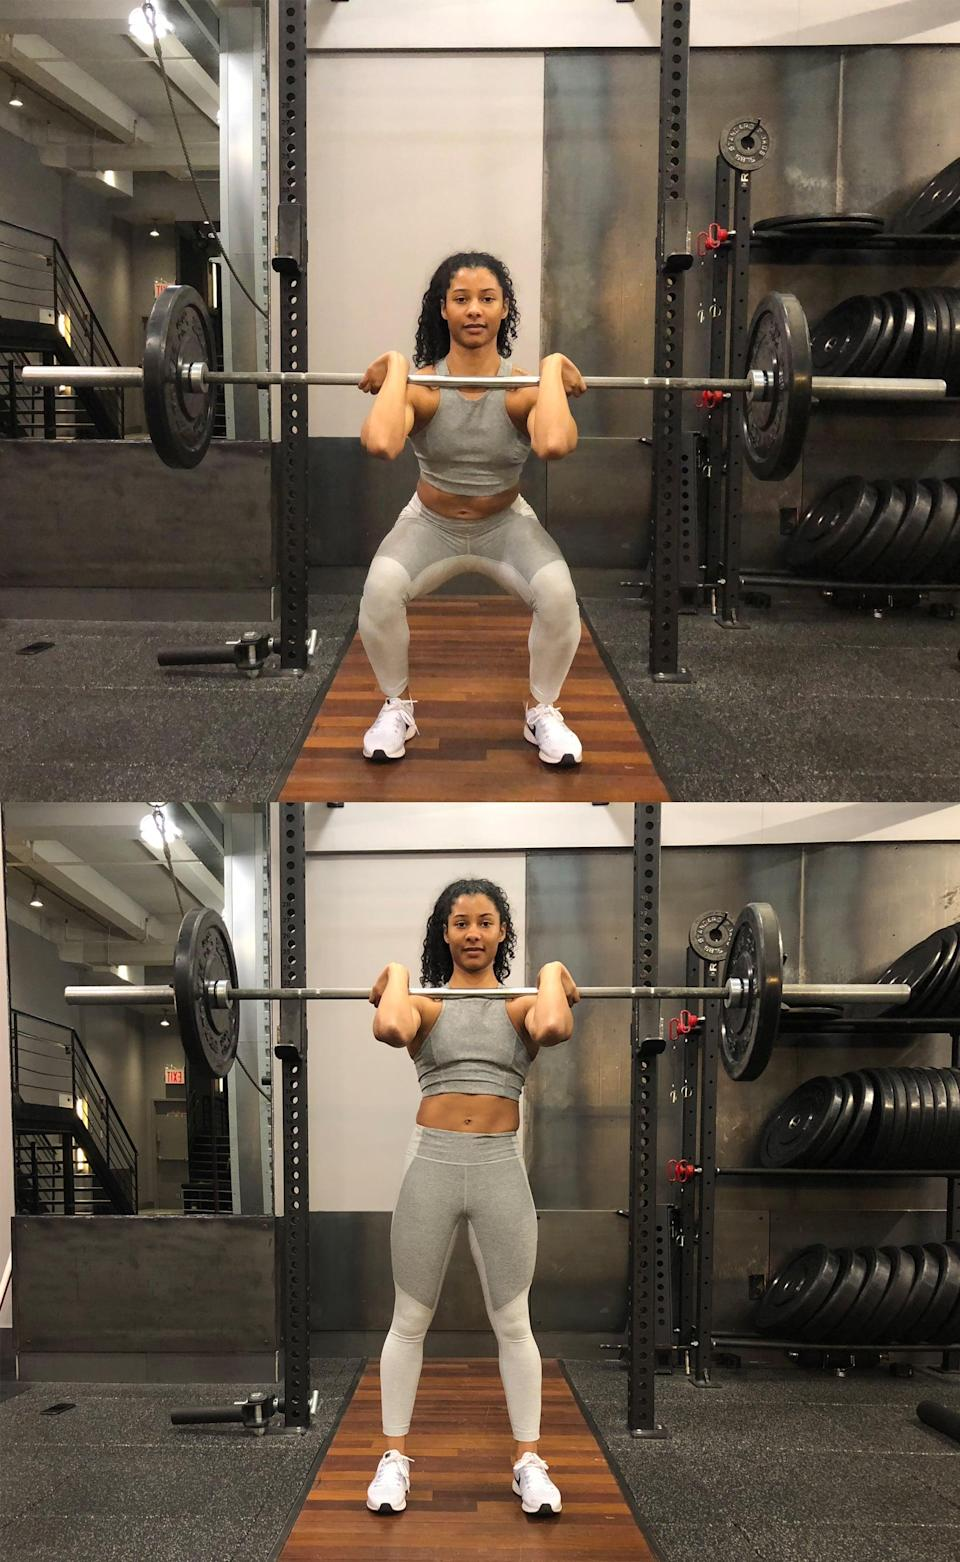 <ul> <li>Start with a loaded barbell; 65 to 75 pounds is a great starting point. Beginners should start with just the barbell, gradually adding weight as they become familiar with the movement.</li> <li>Position your hands about shoulder-width apart on the barbell and lightly grip the bar.</li> <li>Rest the bar on your clavicle and shoulders as you lift your elbows up. Your elbows should go as high as your mobility allows.</li> <li>With your feet about hip-distance apart, lift the barbell off the rack. Take 1 to 2 steps backwards.</li> <li>Shift your weight back into your heels. Brace your abs as you begin to lower into a squat, keeping your head and back straight. Your knees should be as close to 90 degrees as possible.</li> <li>With your core still braced, drive through your heels to stand back up. Be sure to squeeze your glutes at the top of your squat.</li> <li>That's one rep.</li> <li>Do three sets of 8.</li> </ul>